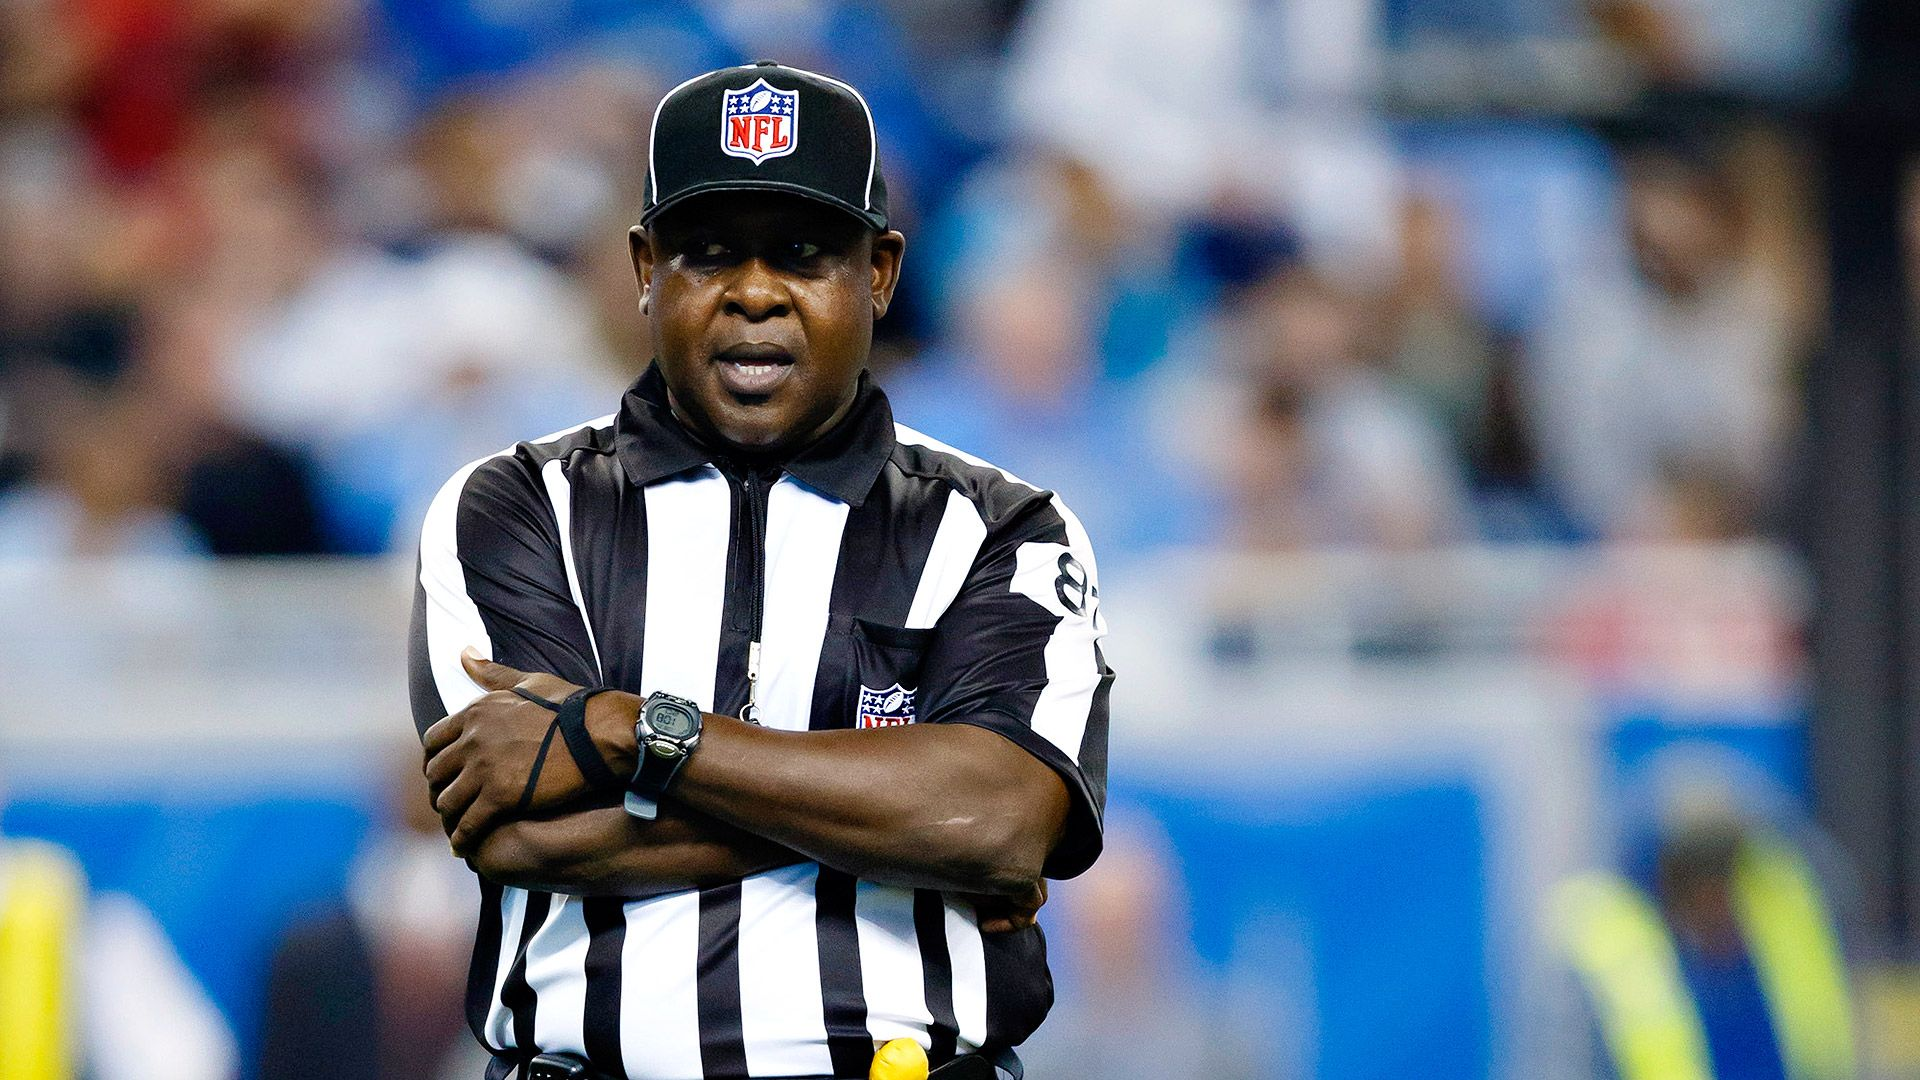 Nfl Referees Association Expects Umpire Roy Ellison To Be Cleared